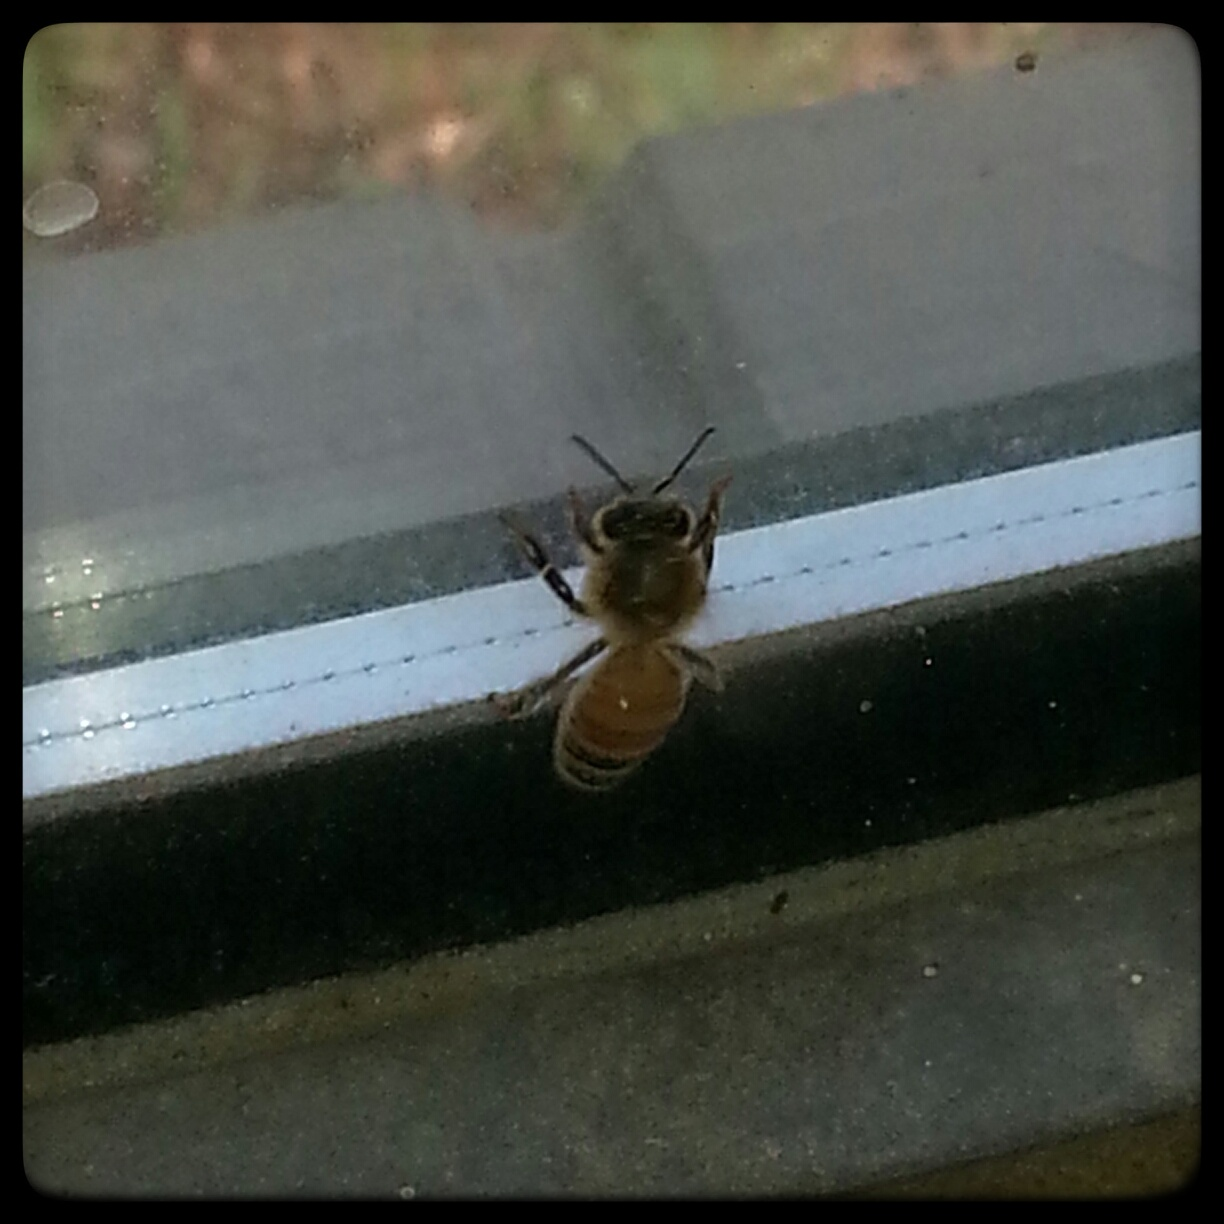 The Bee-pocolypse is over, y'all!